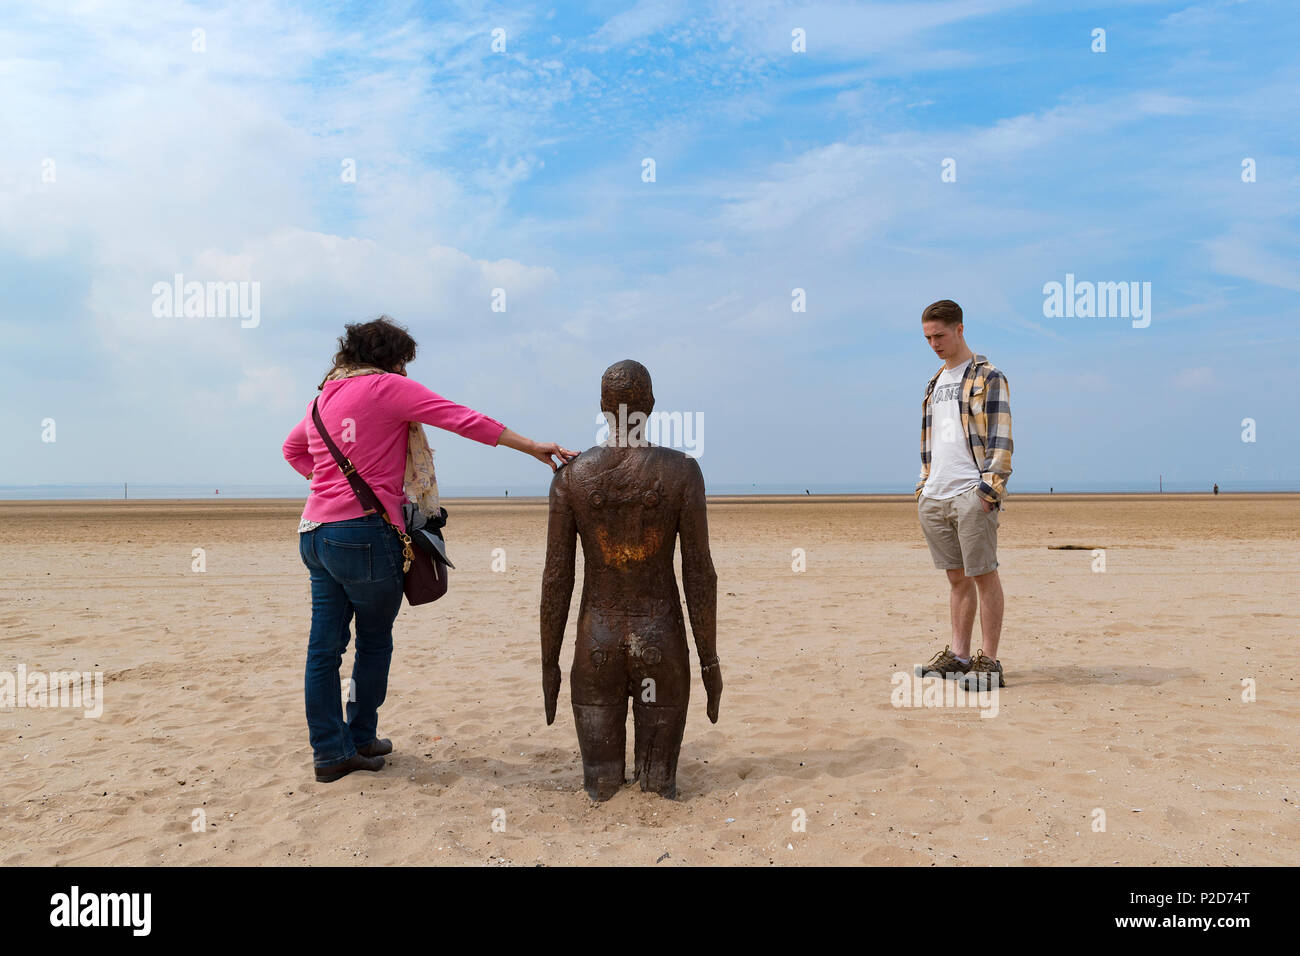 another place, art installation by anthony gormley on crosby beach near liverpool in england, britain, uk. - Stock Image